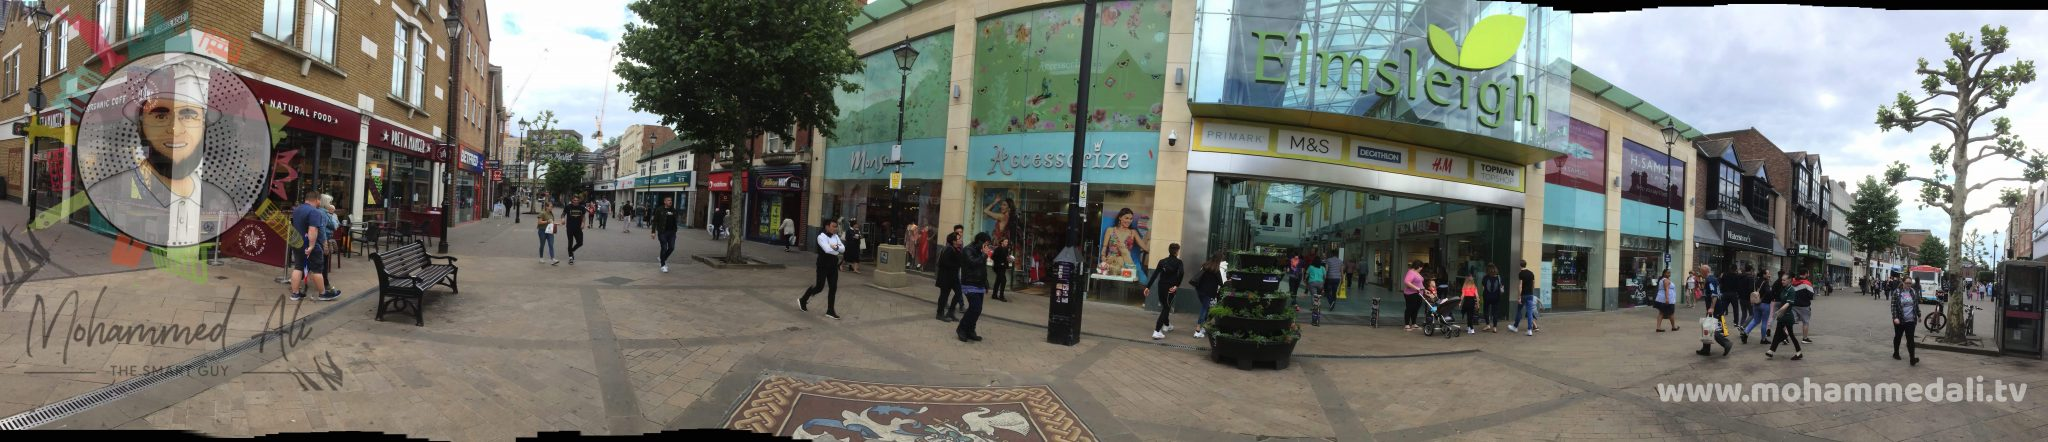 The Elmsleigh Shopping Centre in the heart of Staines-upon-Thames